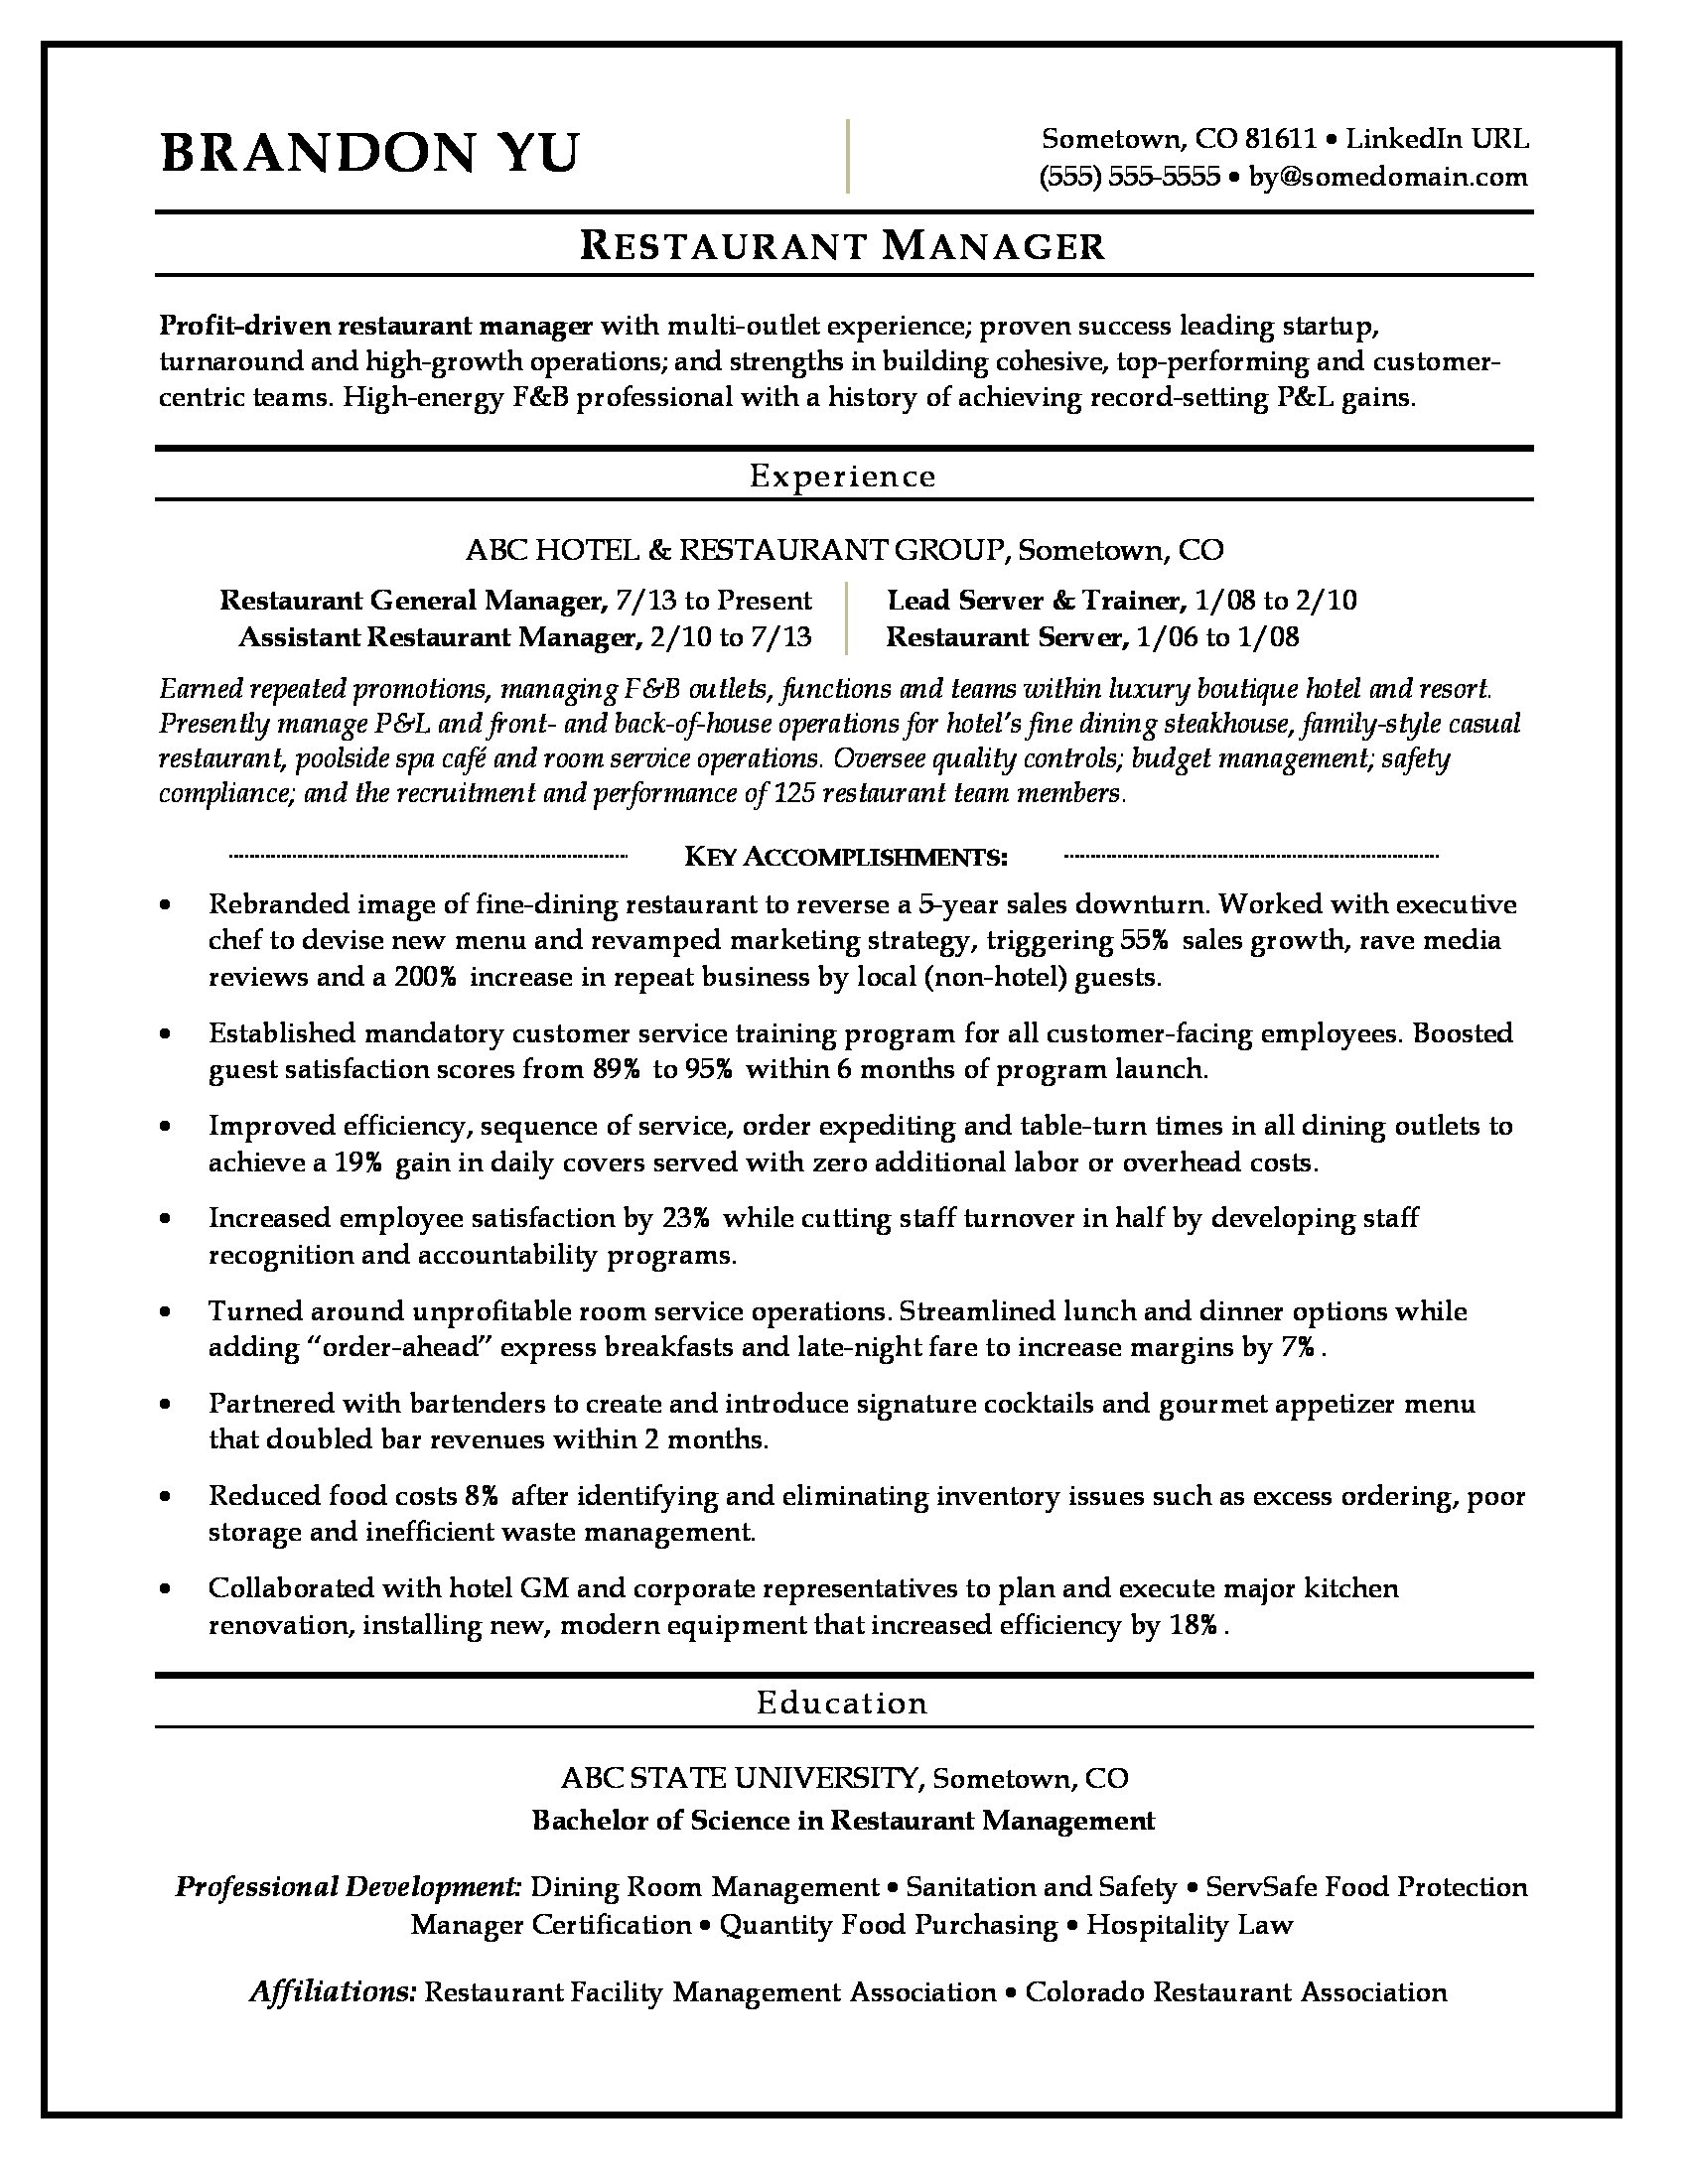 Delightful Sample Resume For A Restaurant Manager To Restaurant Resume